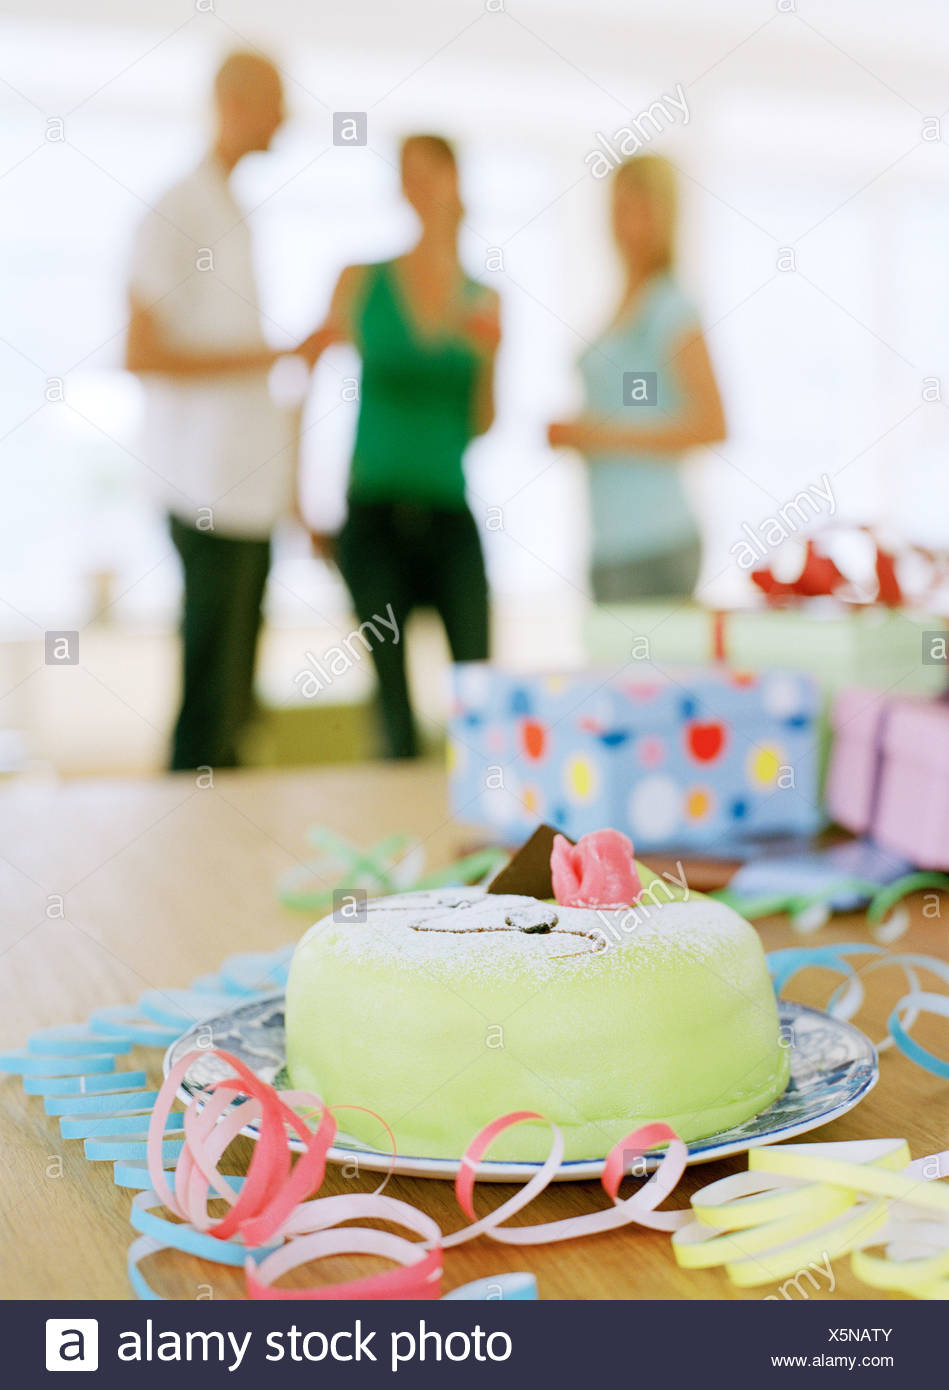 A Marzipan Covered Cake And Presents On Table Three People In The Background